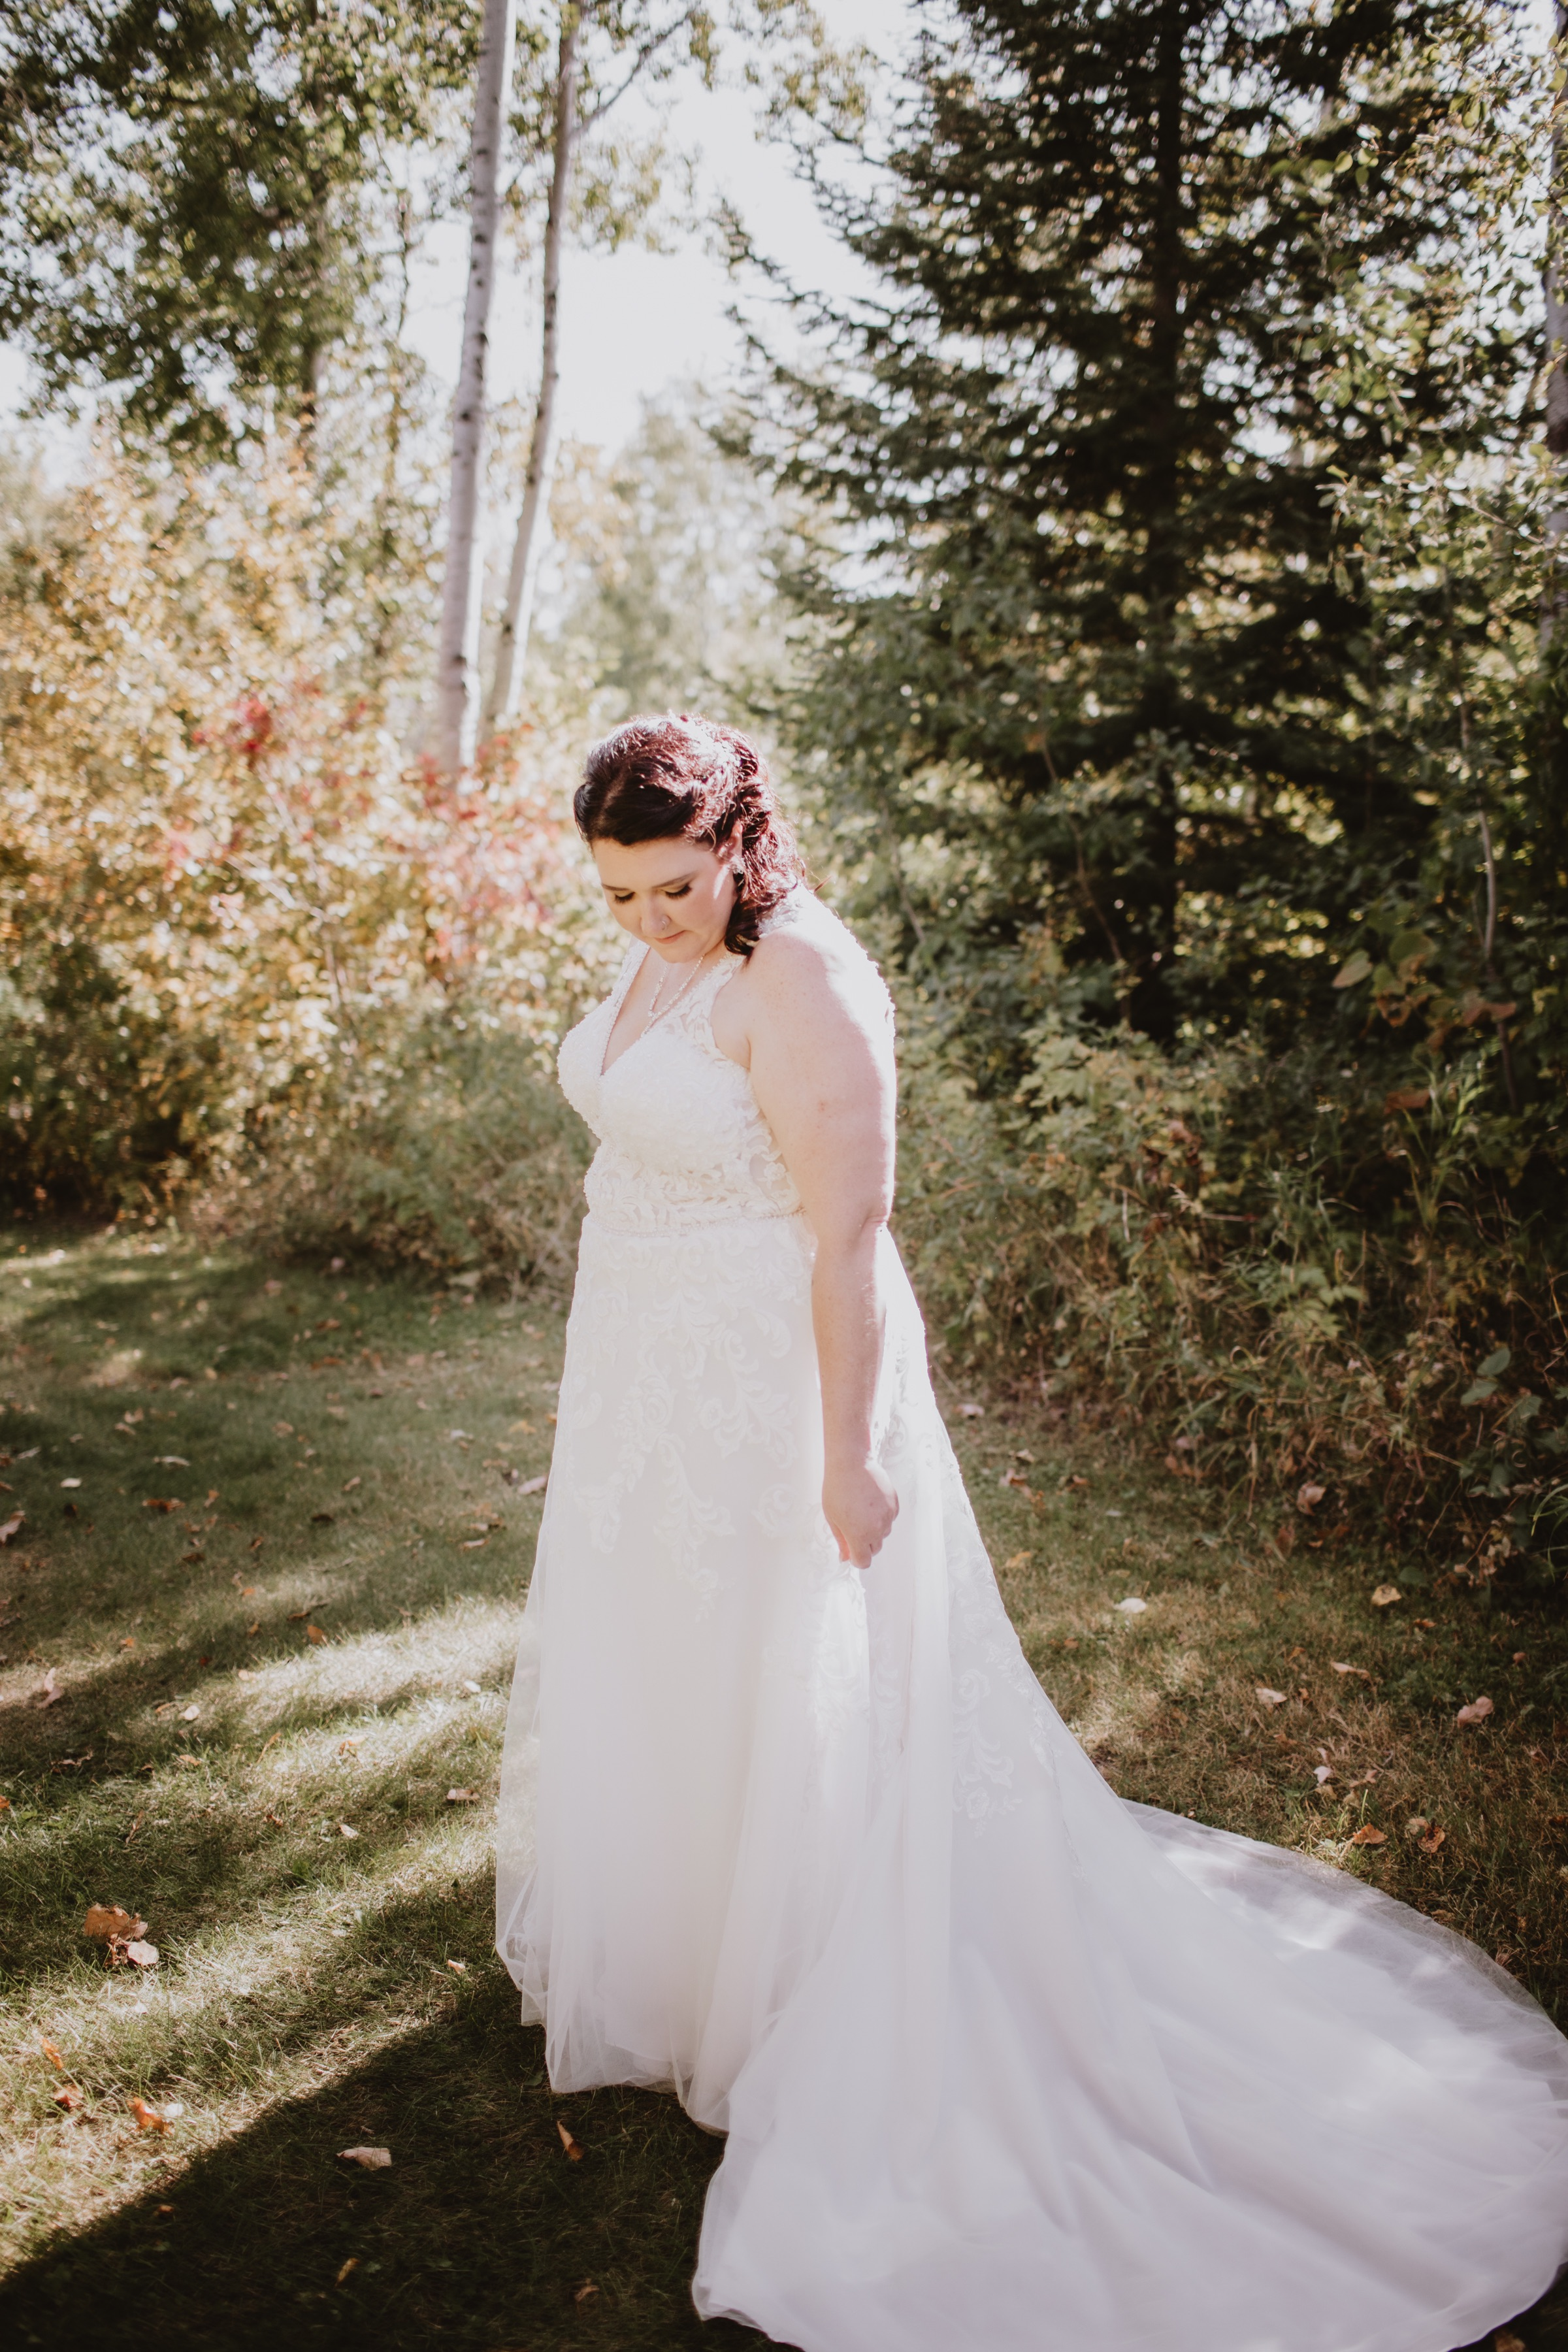 A-Line Wedding Gown from CKLY Fashion and Bridal.